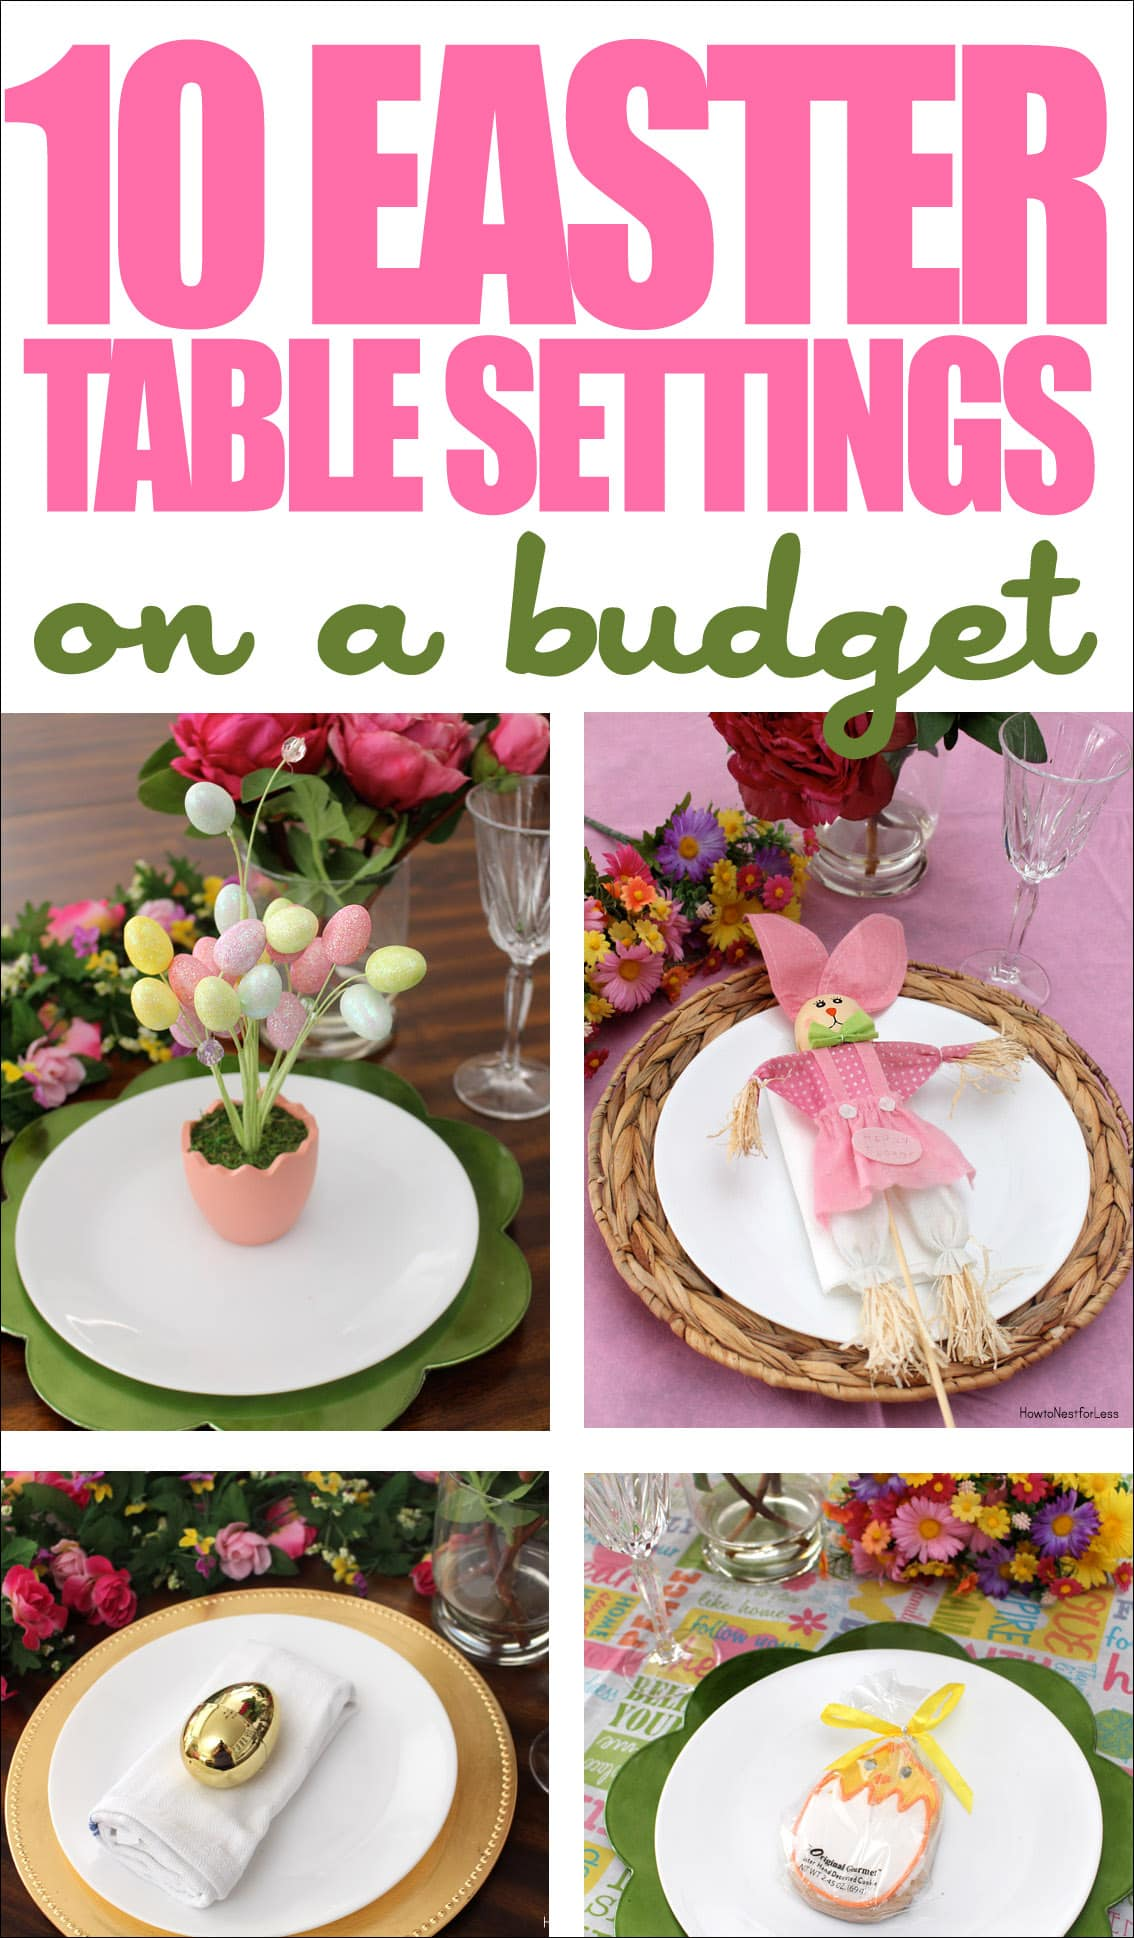 10 easter table settings  sc 1 st  How to Nest for Less : easter table setting - Pezcame.Com